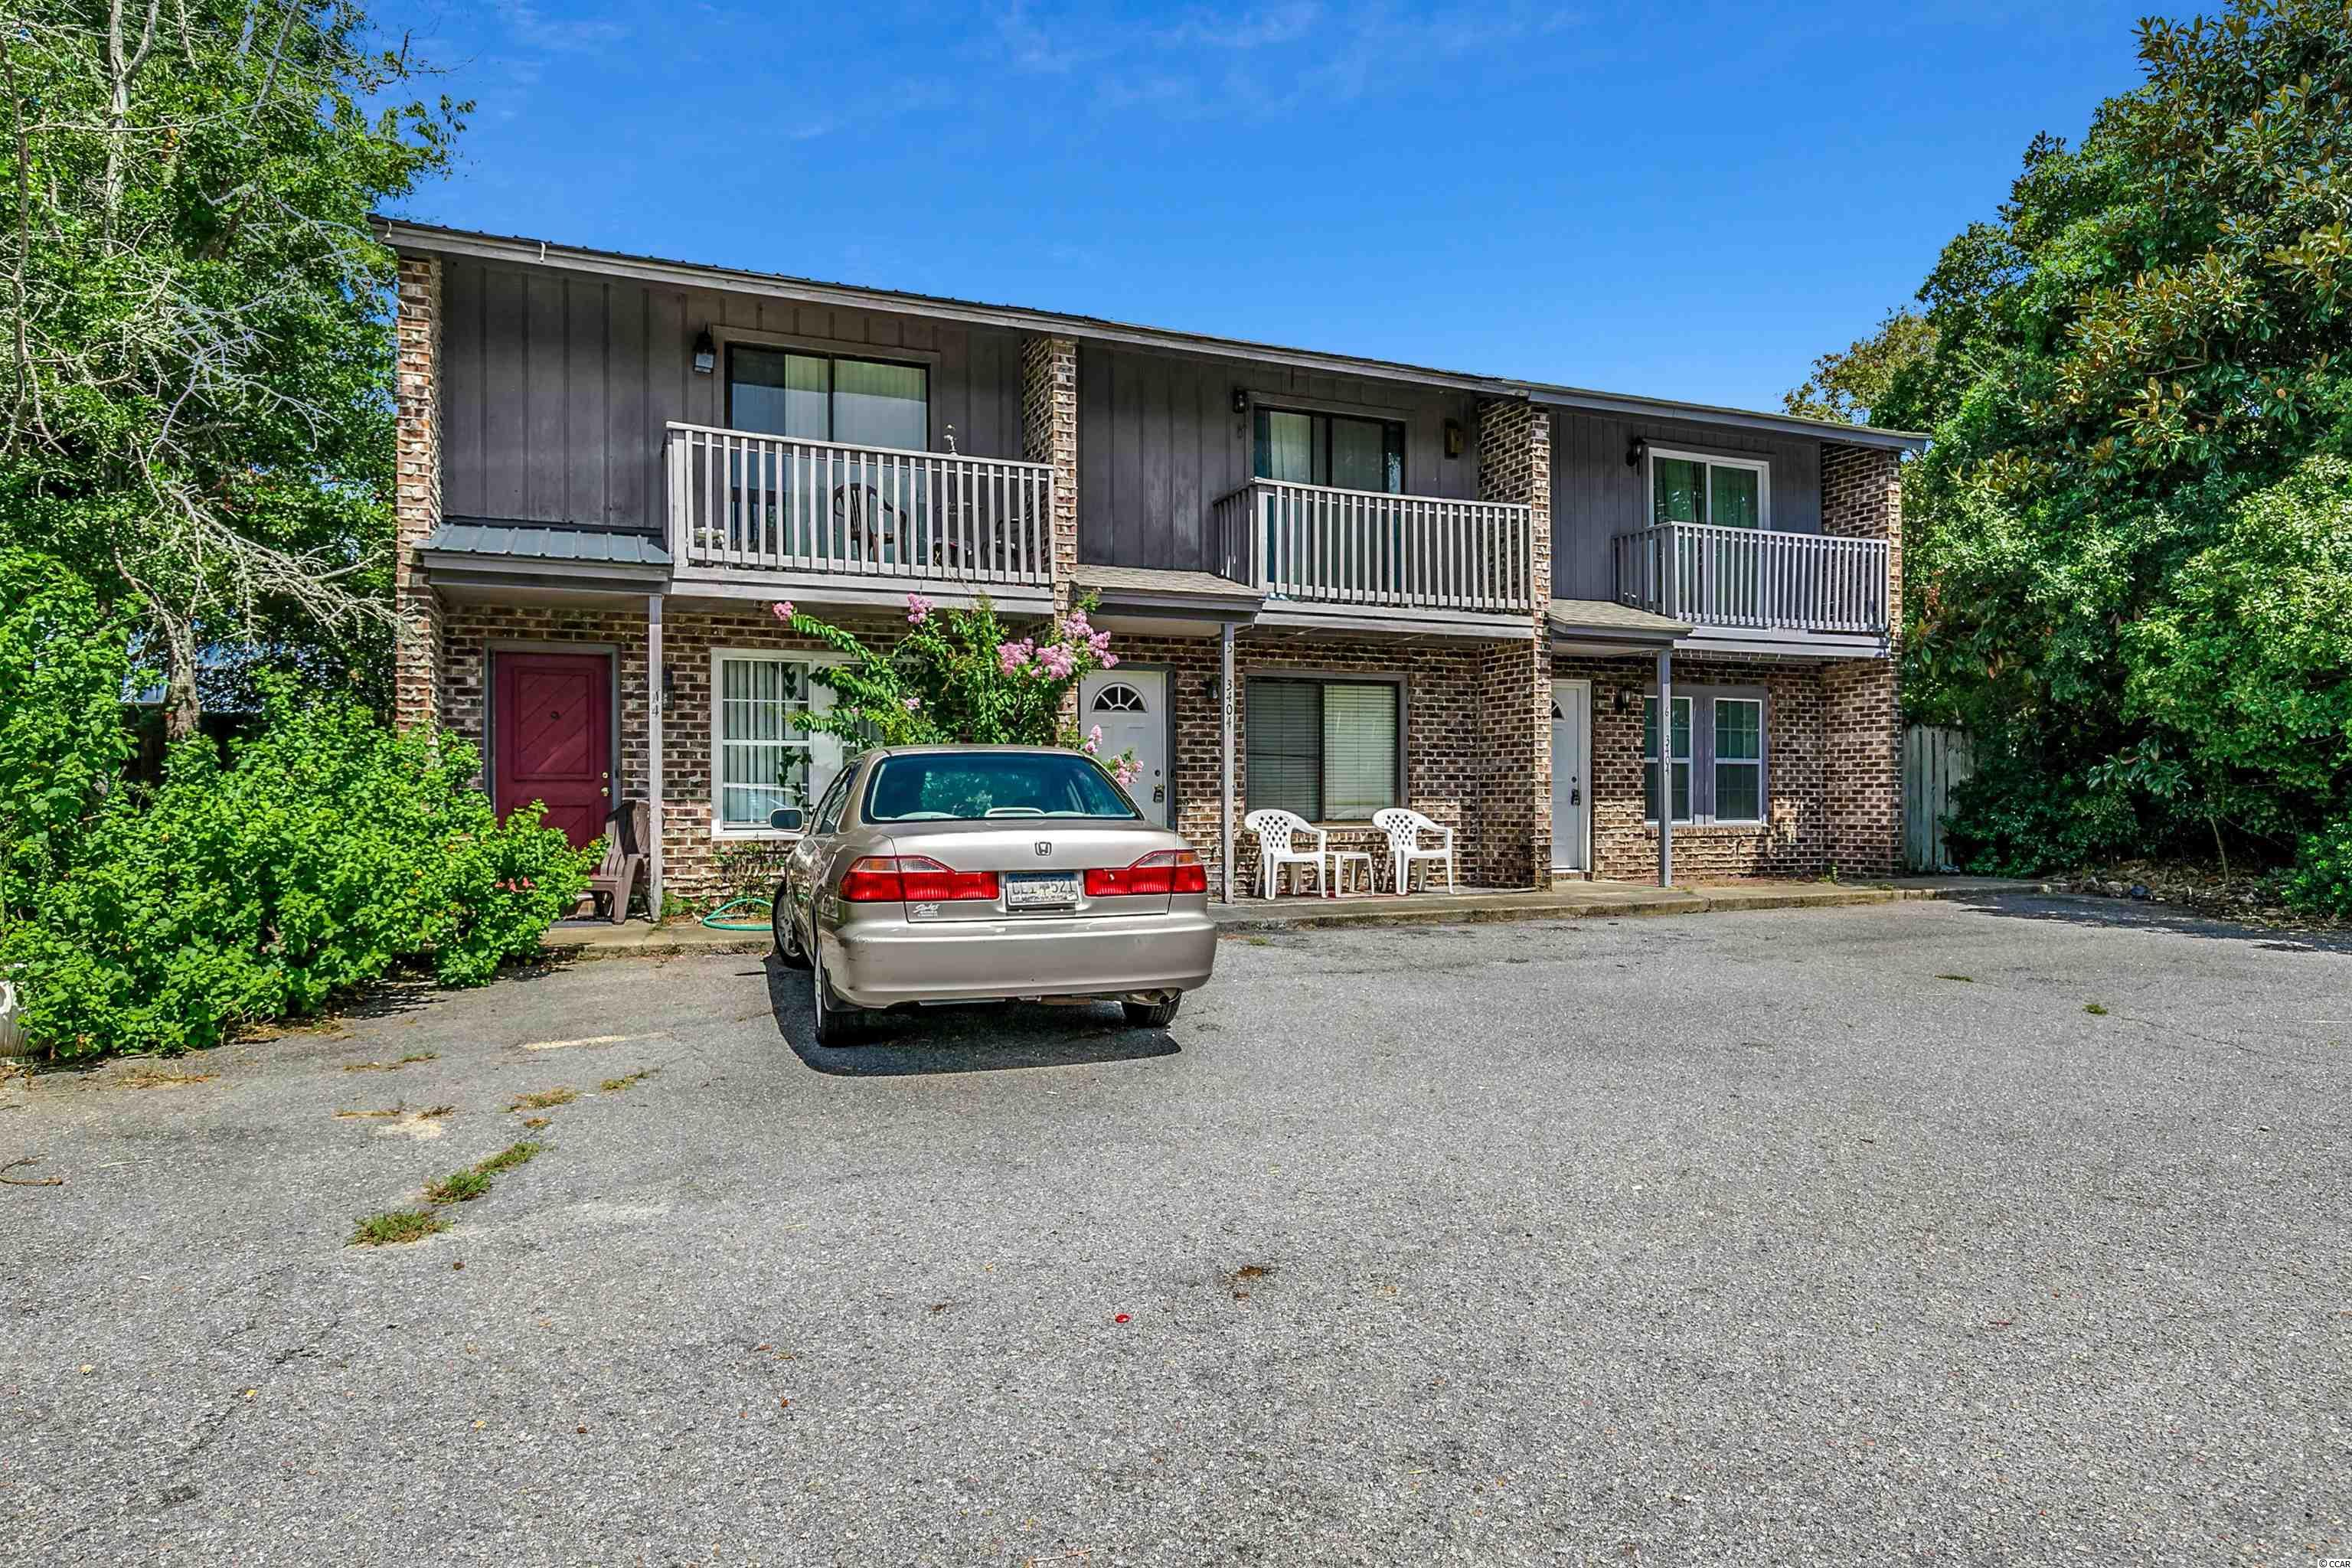 Two level, true townhome in just a few blocks from the beach, beachside of 17 in the Windy Hill section of North Myrtle Beach. Great location, fenced in backyard, nice floorplan. Great living space, upstairs bedrooms, Use as a primary residence, second home or rental. All this and no HOA!